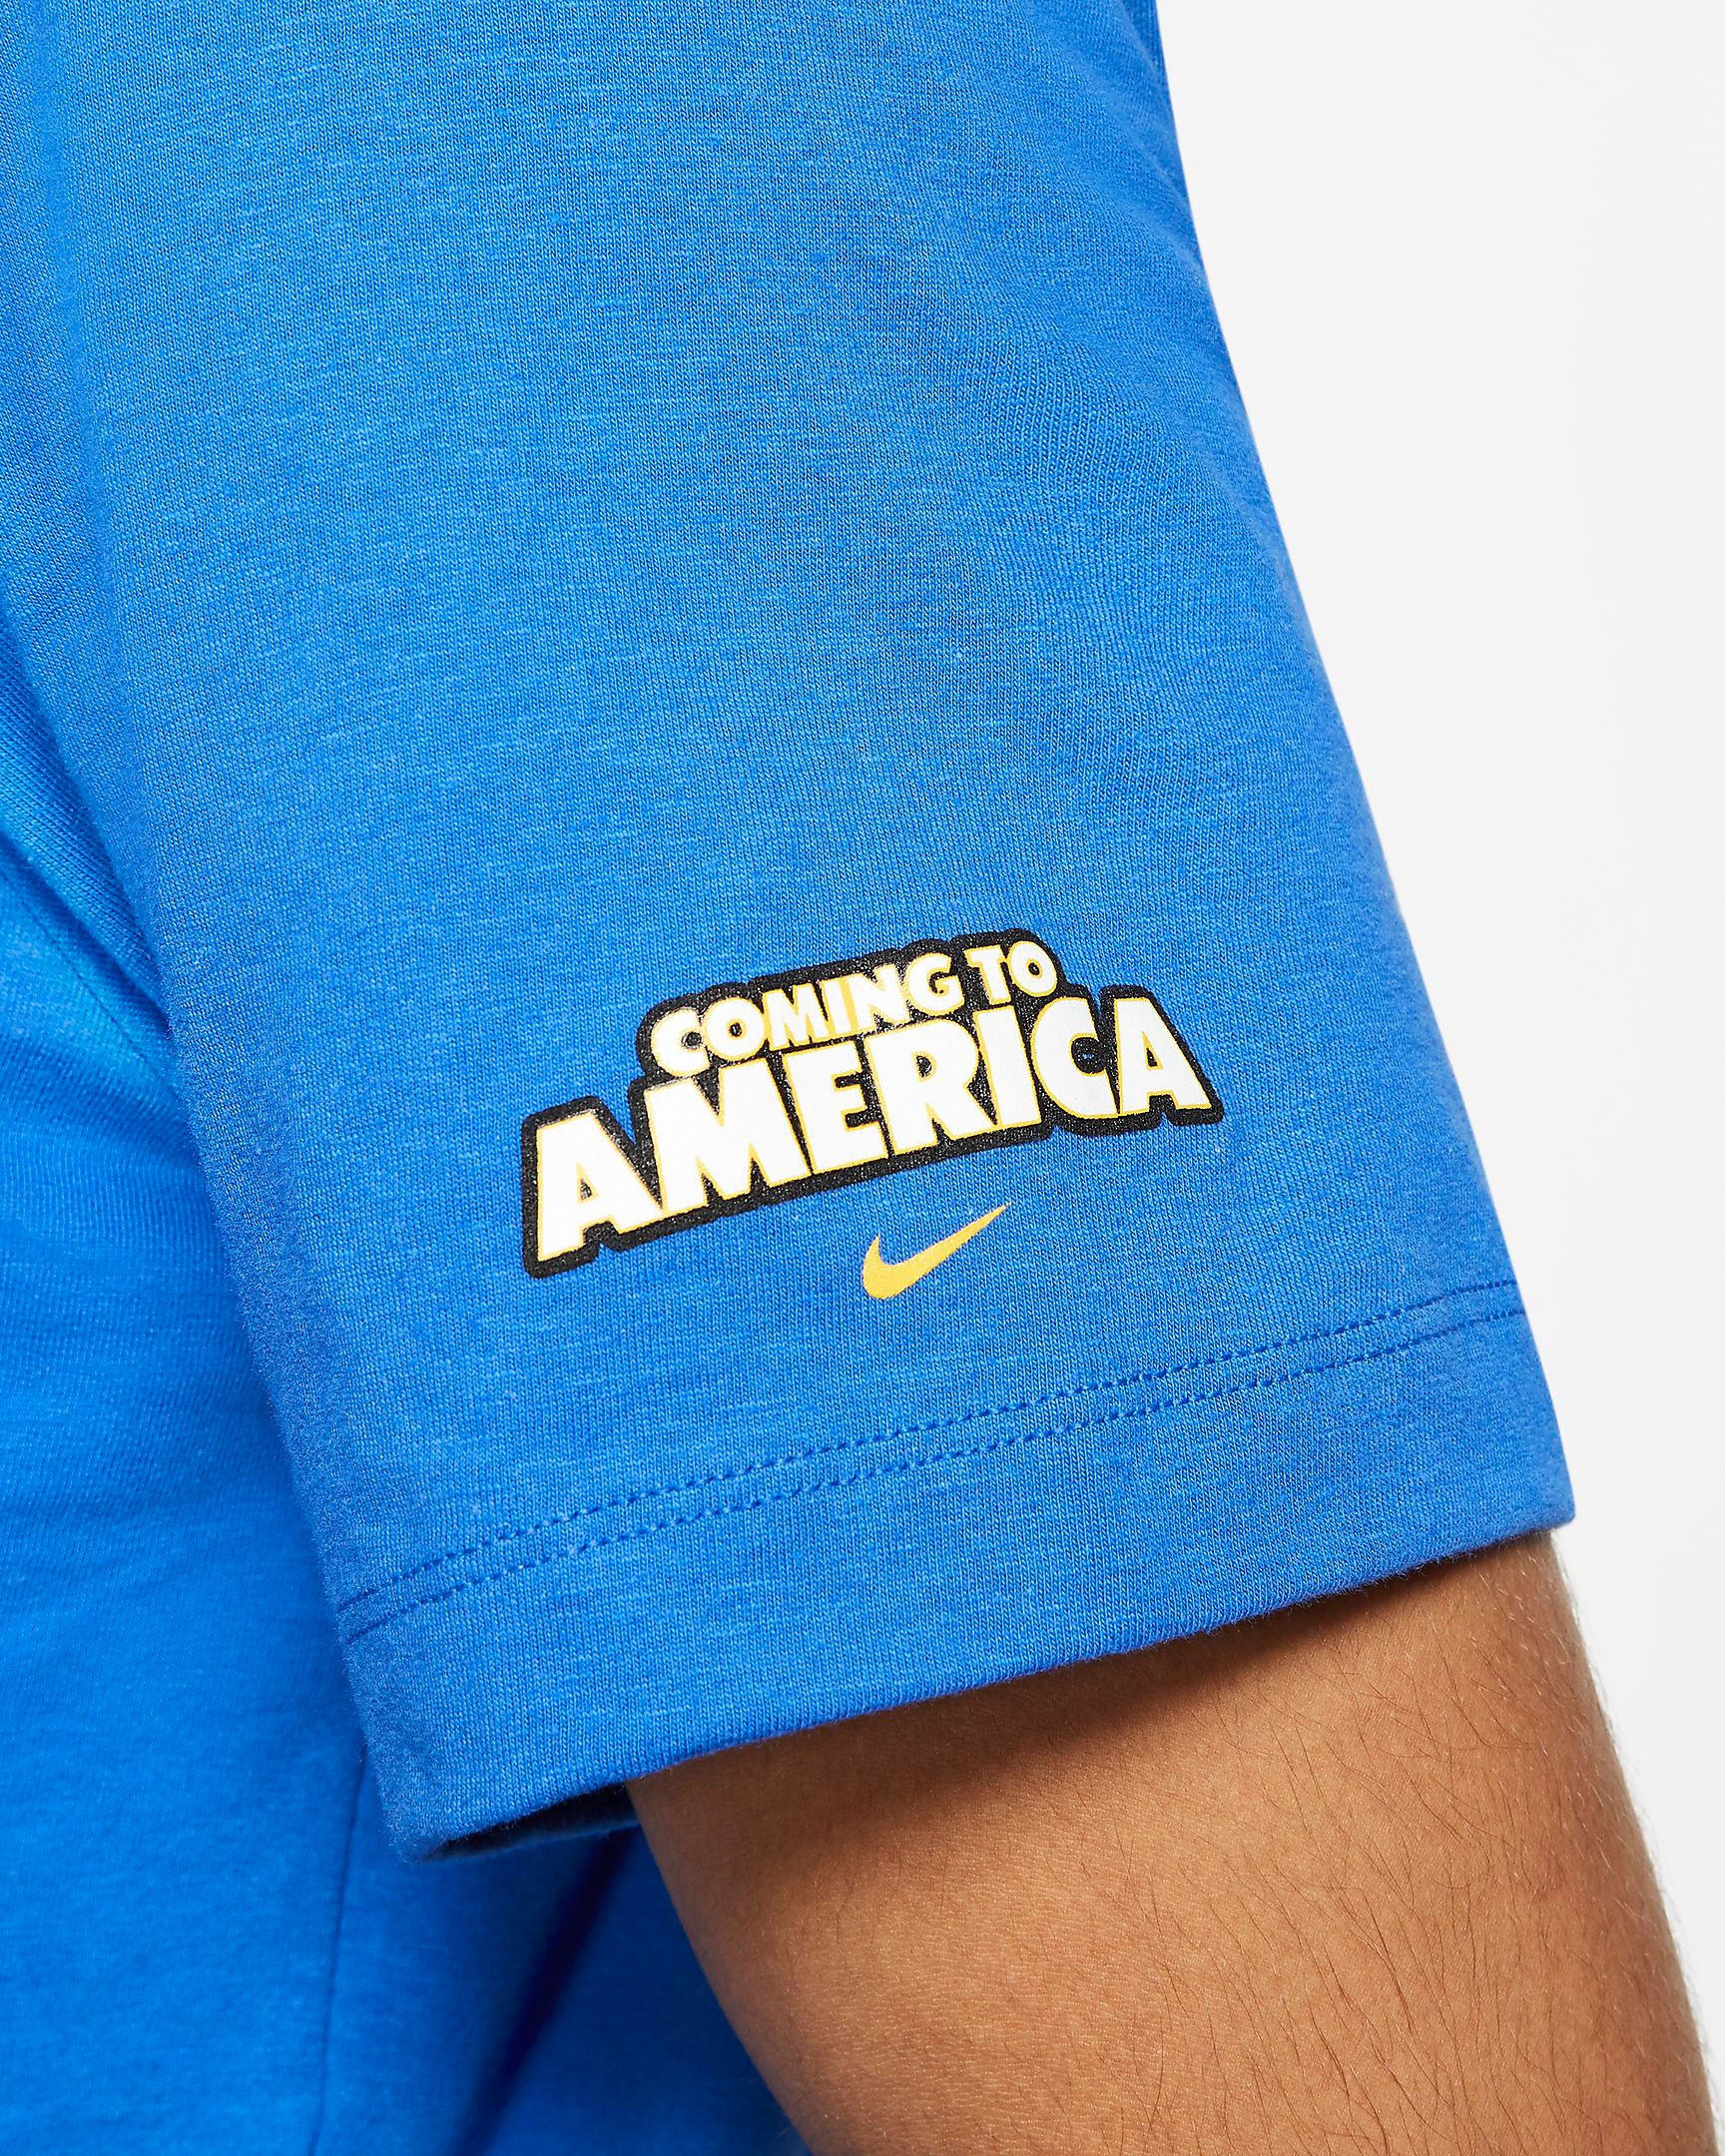 nike-zoom-freak-1-employee-of-the-month-shirt-blue-2